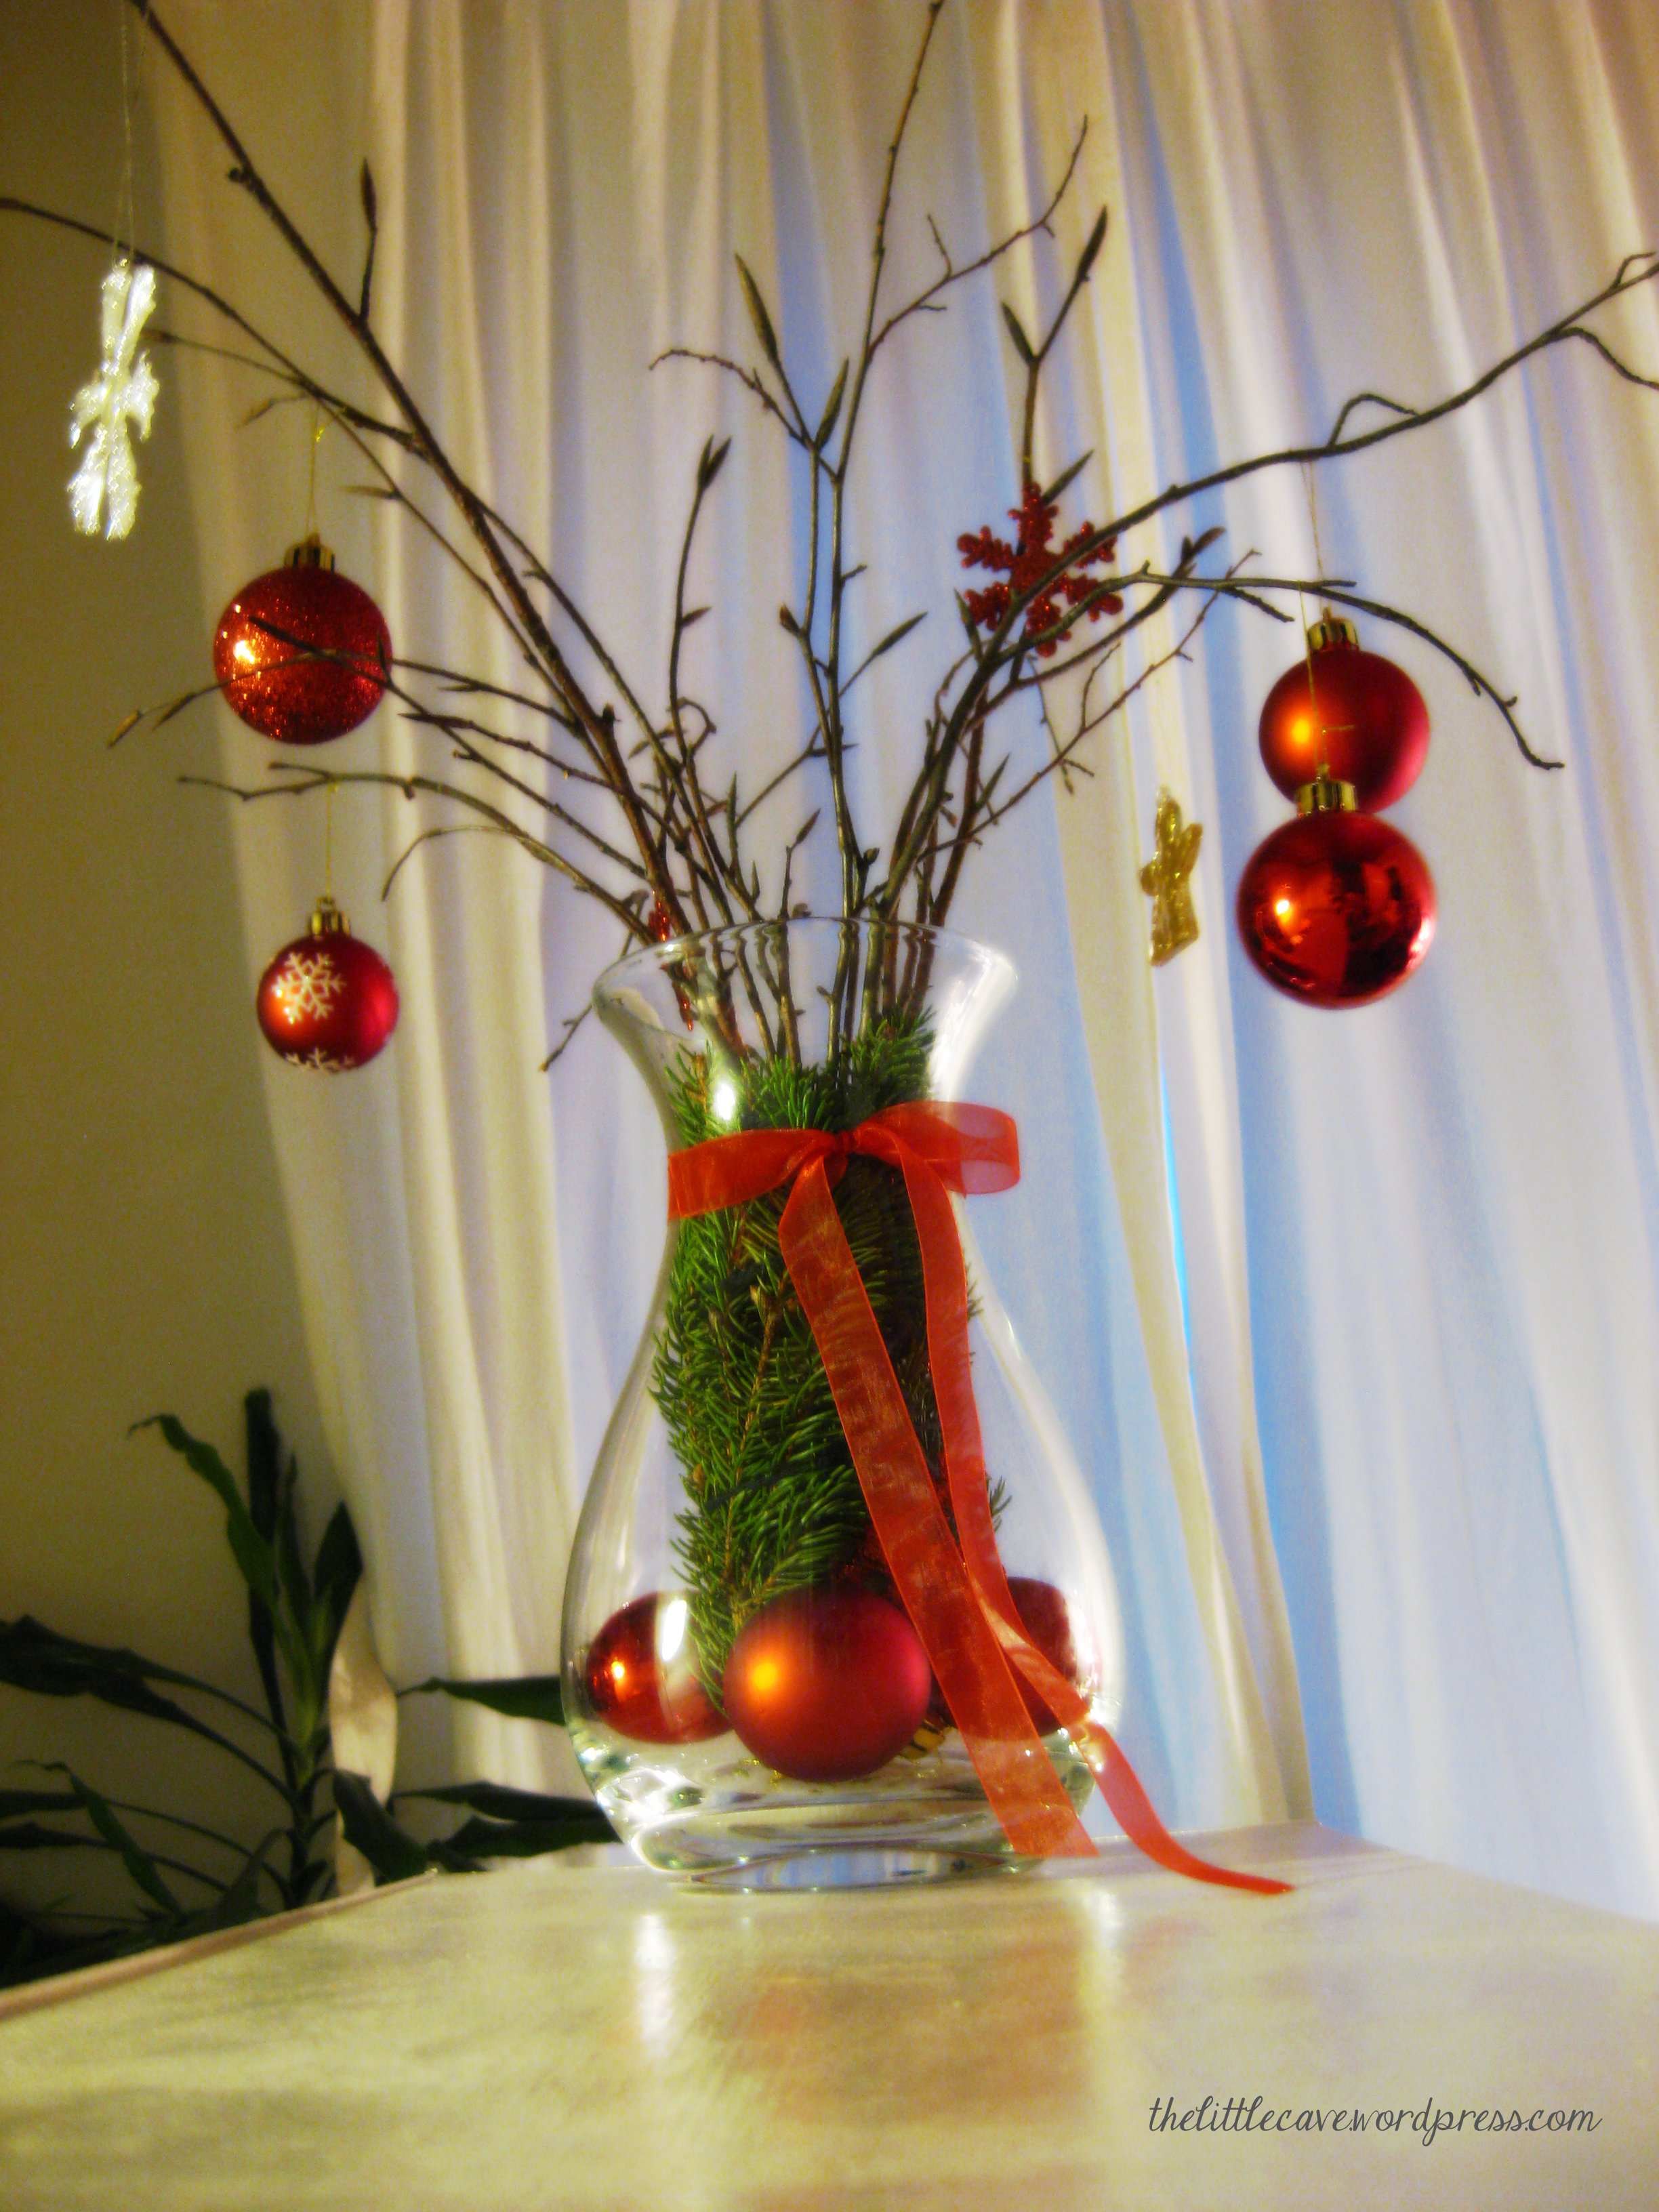 weihnachtsvase / christmas vase | the little cave